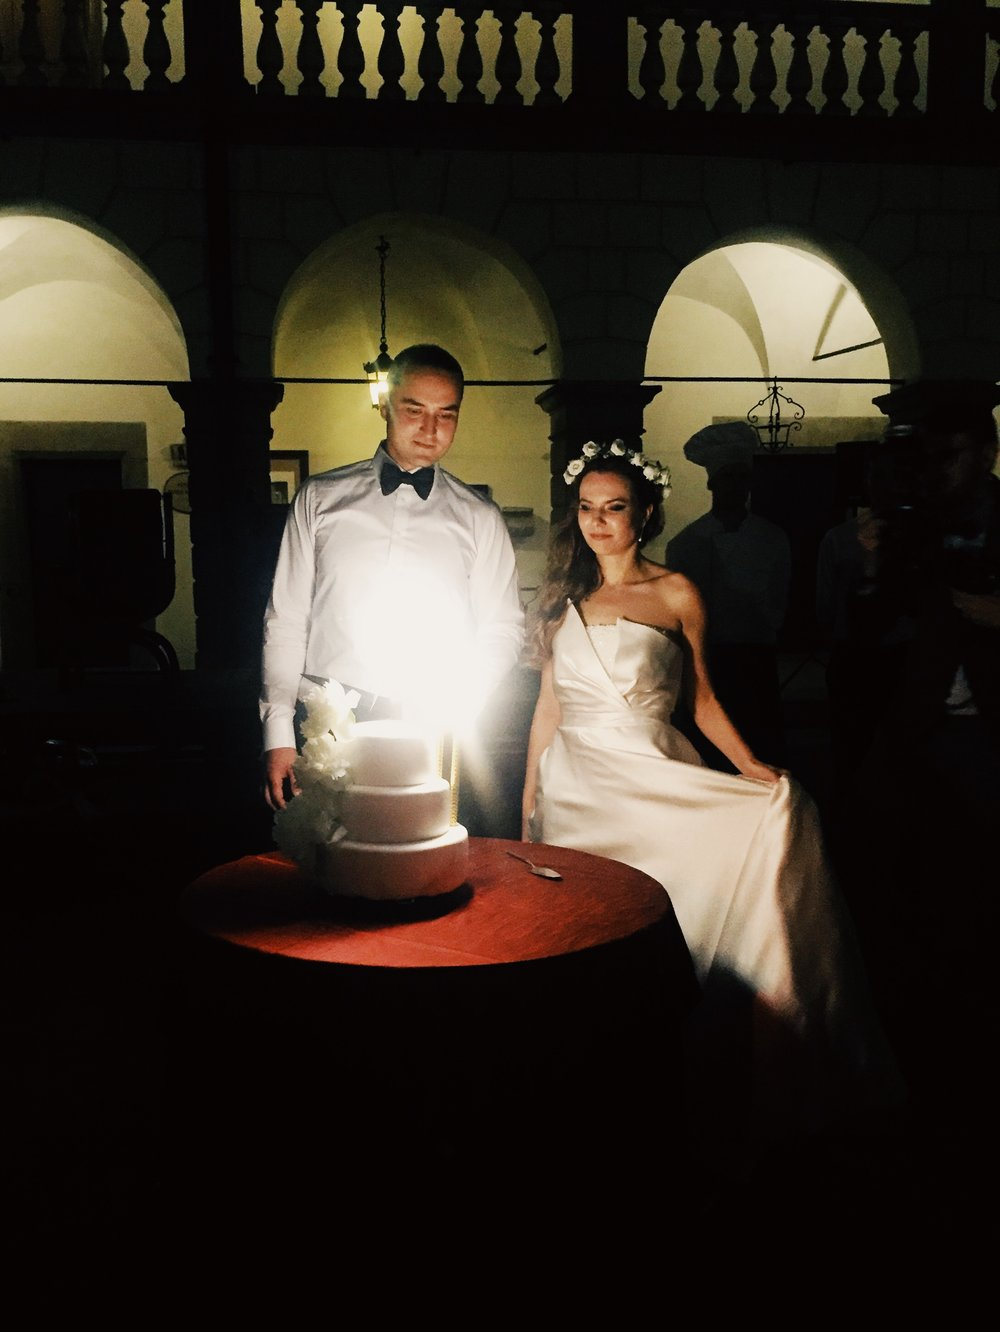 The beautiful bride and groom with their wedding cake.